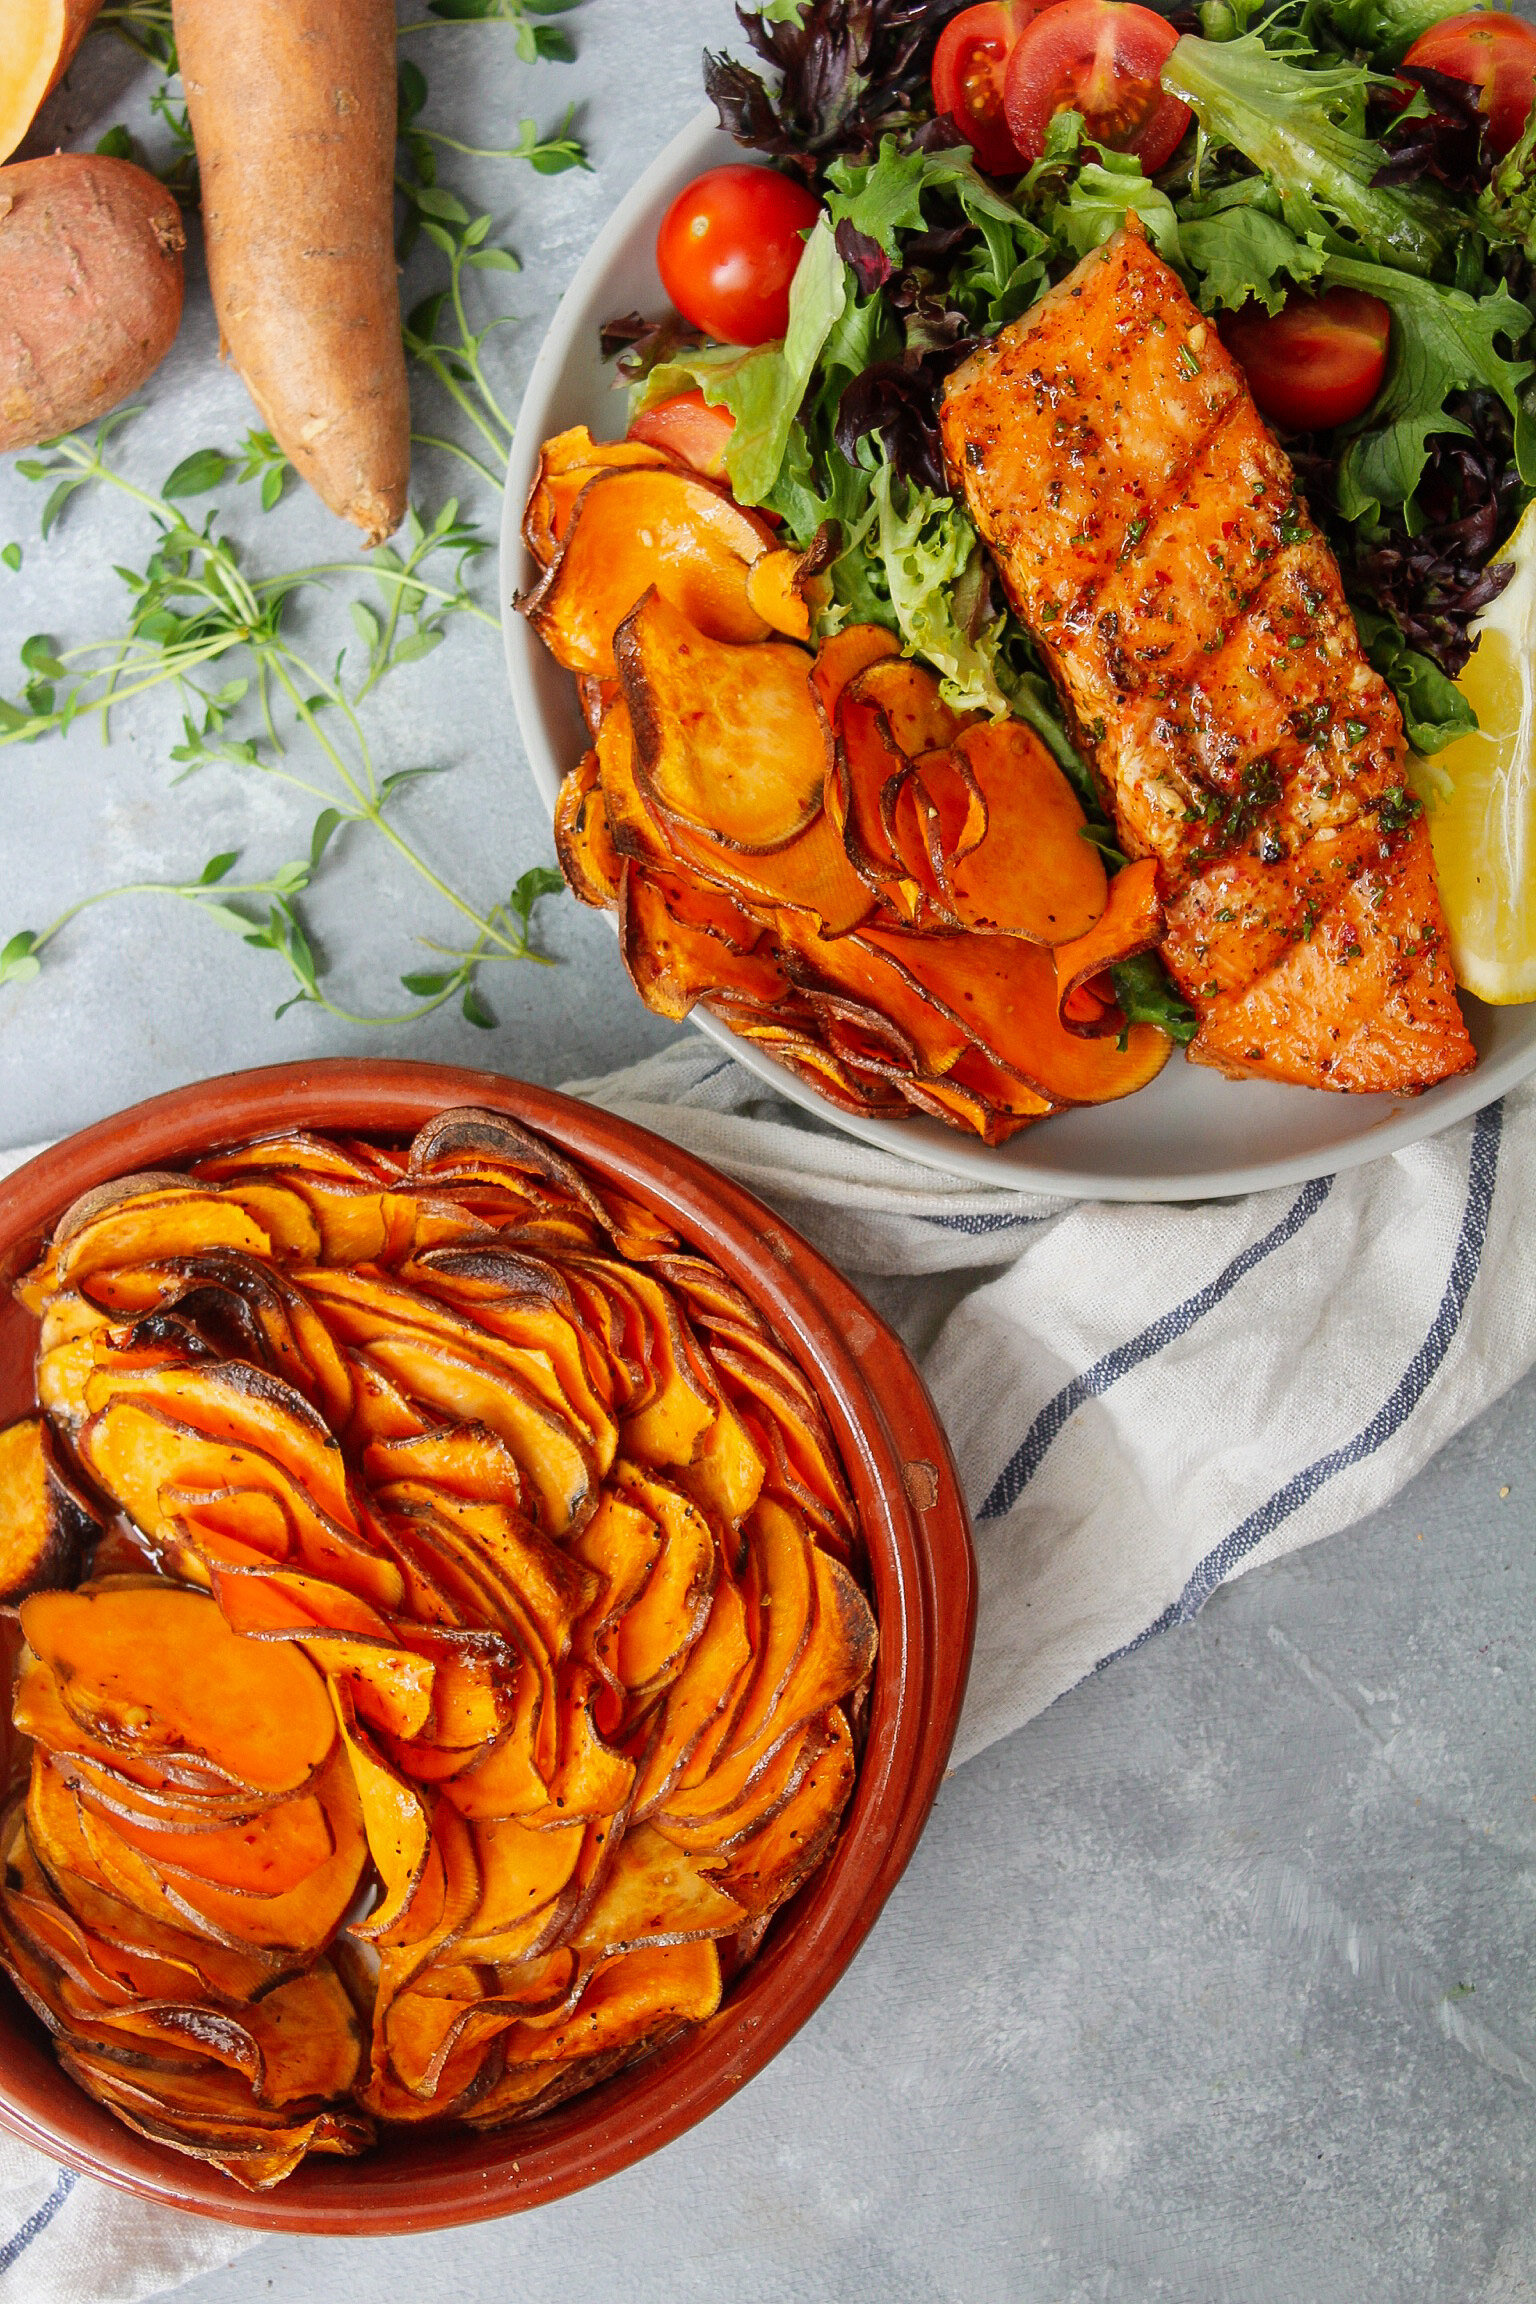 Baked Sweet Potato Slices With Bbq Garlic Herb Salmon Fit Soul Kitchen